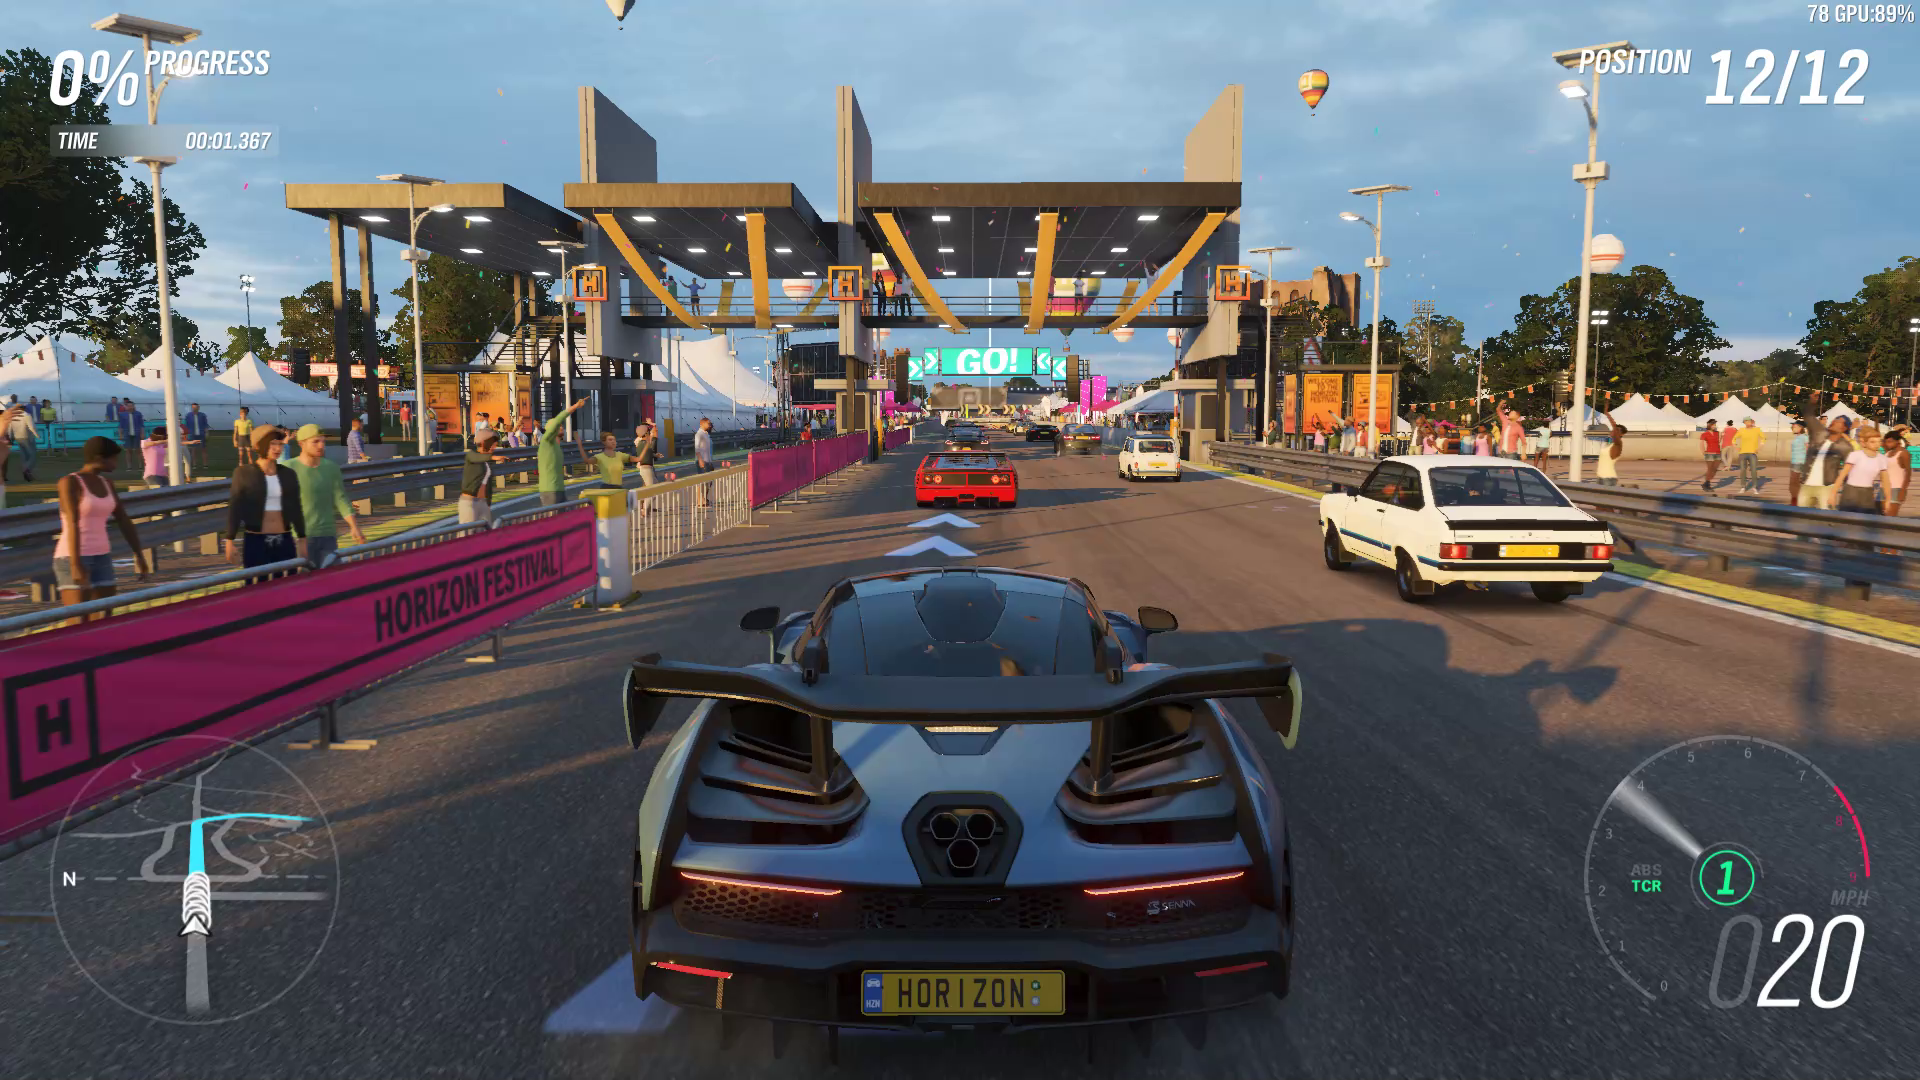 forza horizon 4 pc performance review a luxurious ride. Black Bedroom Furniture Sets. Home Design Ideas